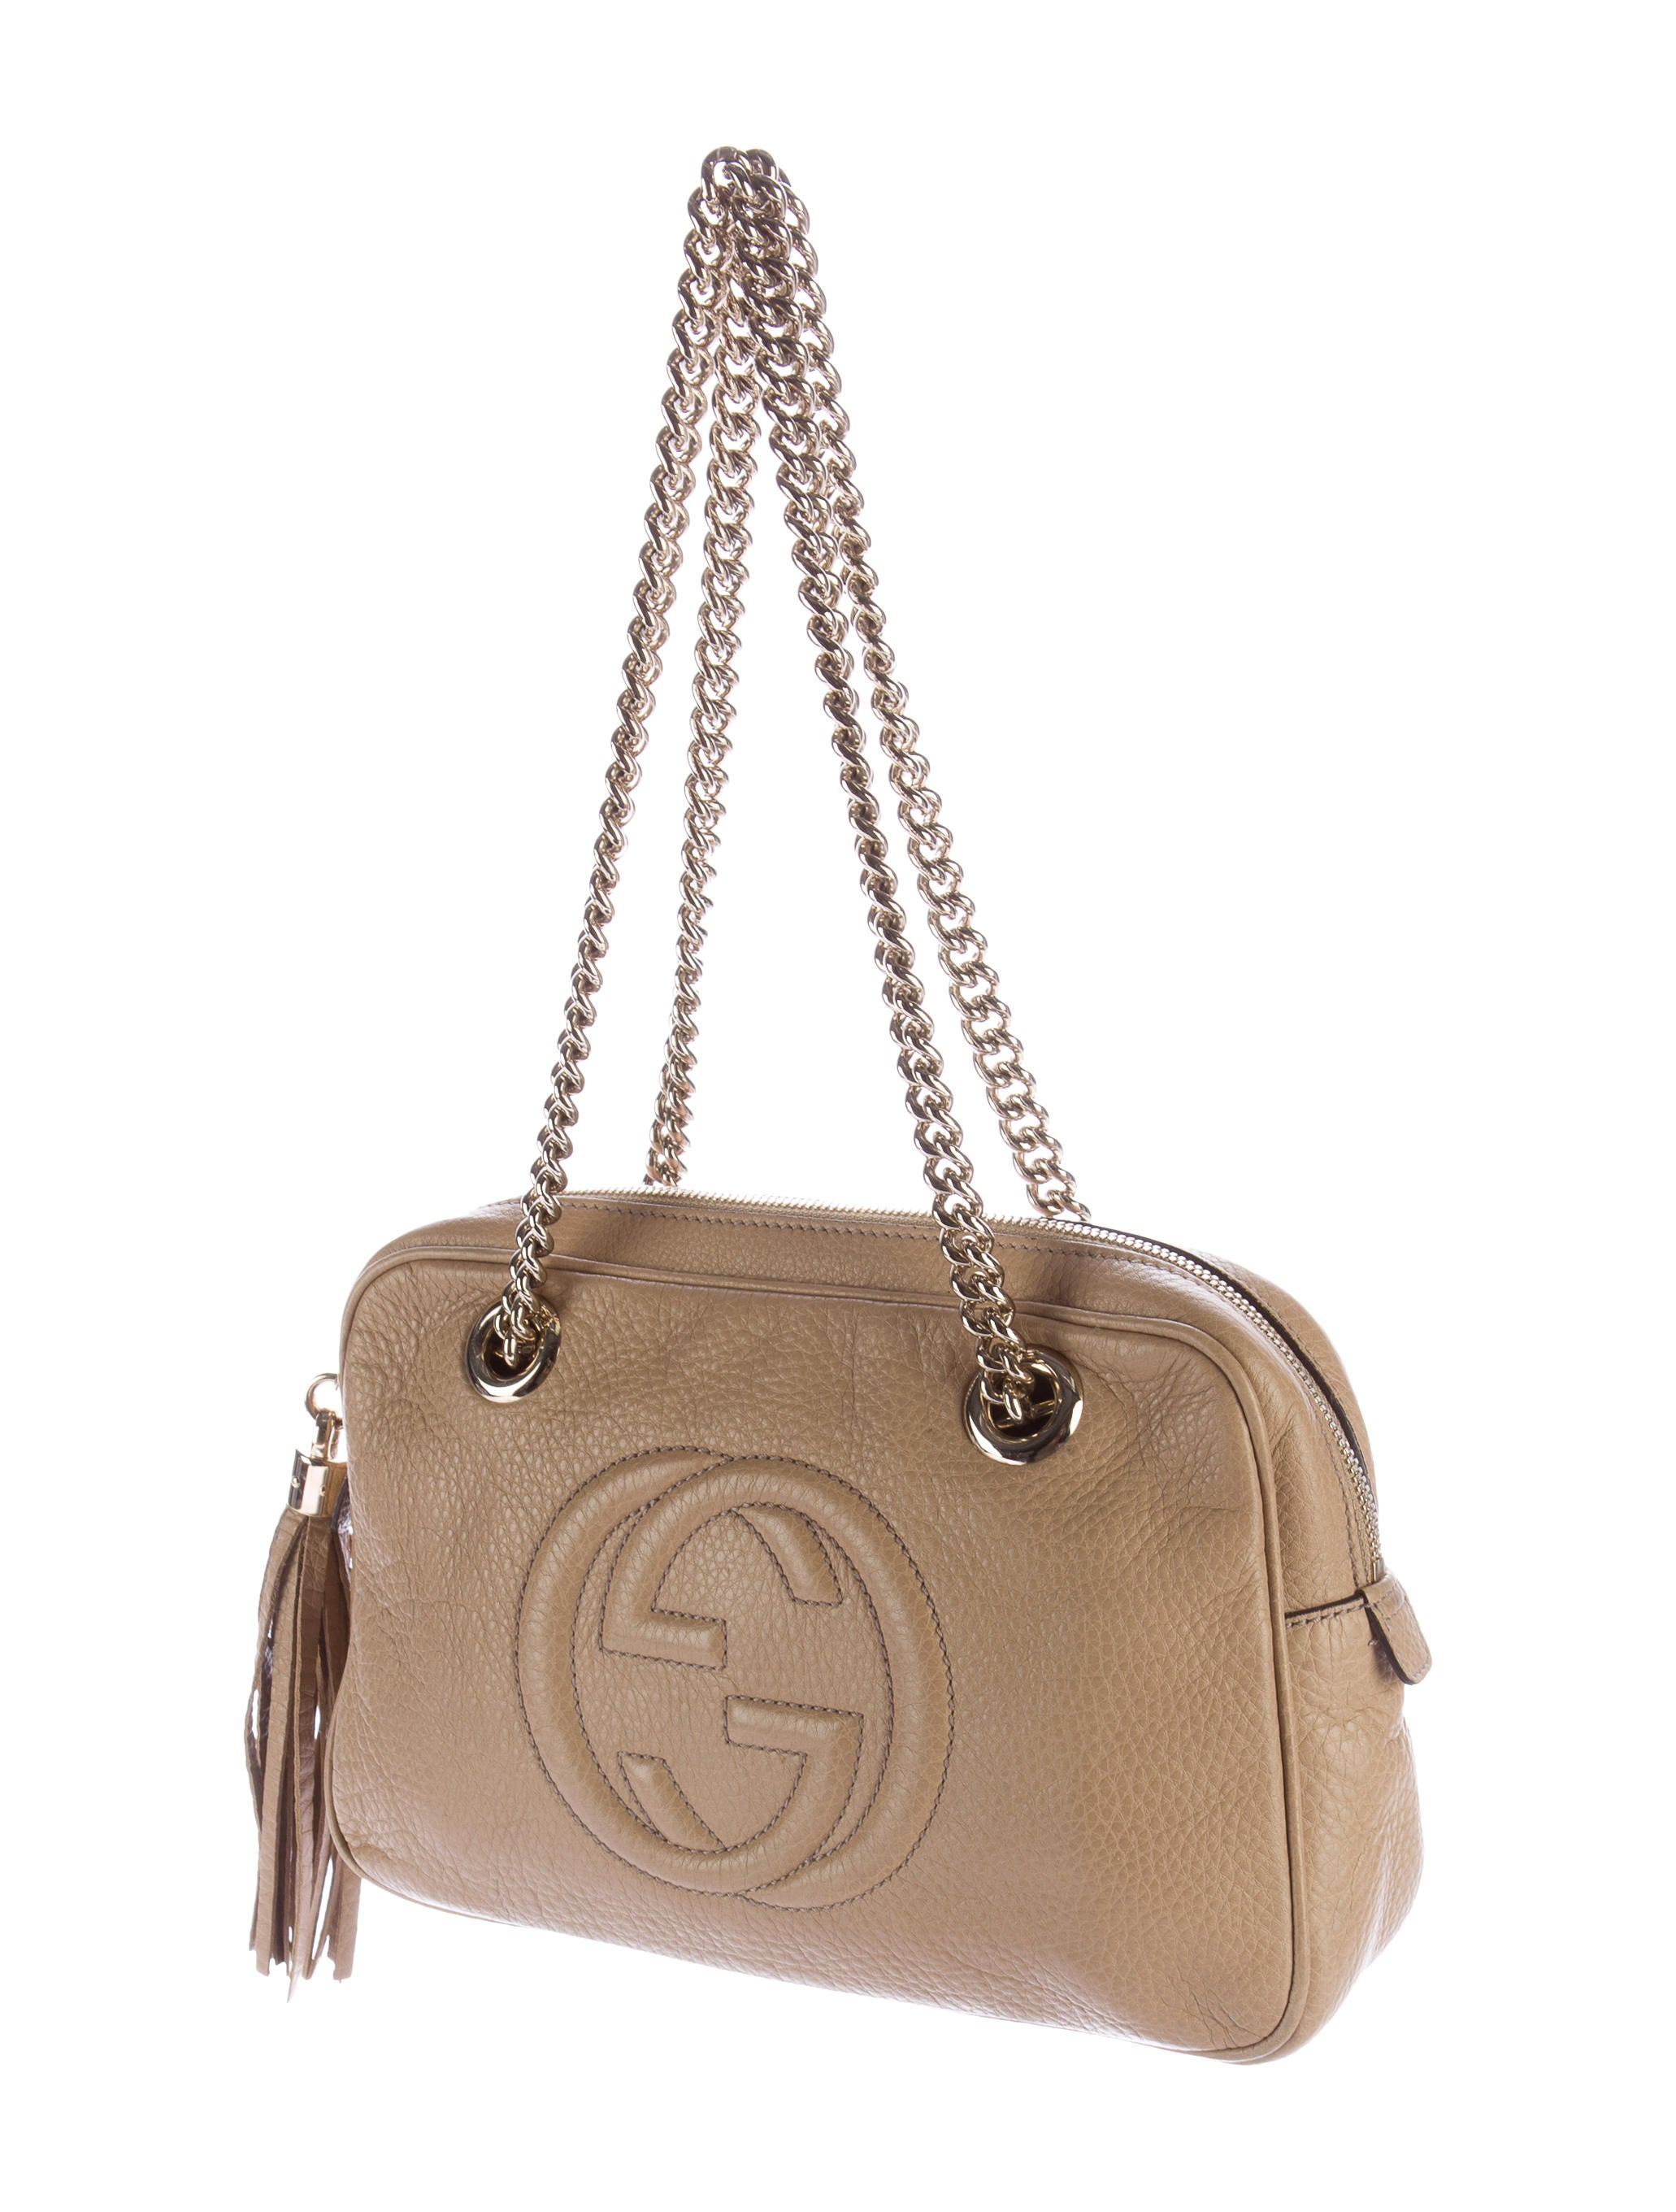 3476abc228df Gucci Soho Leather Chain Handbag | Stanford Center for Opportunity ...